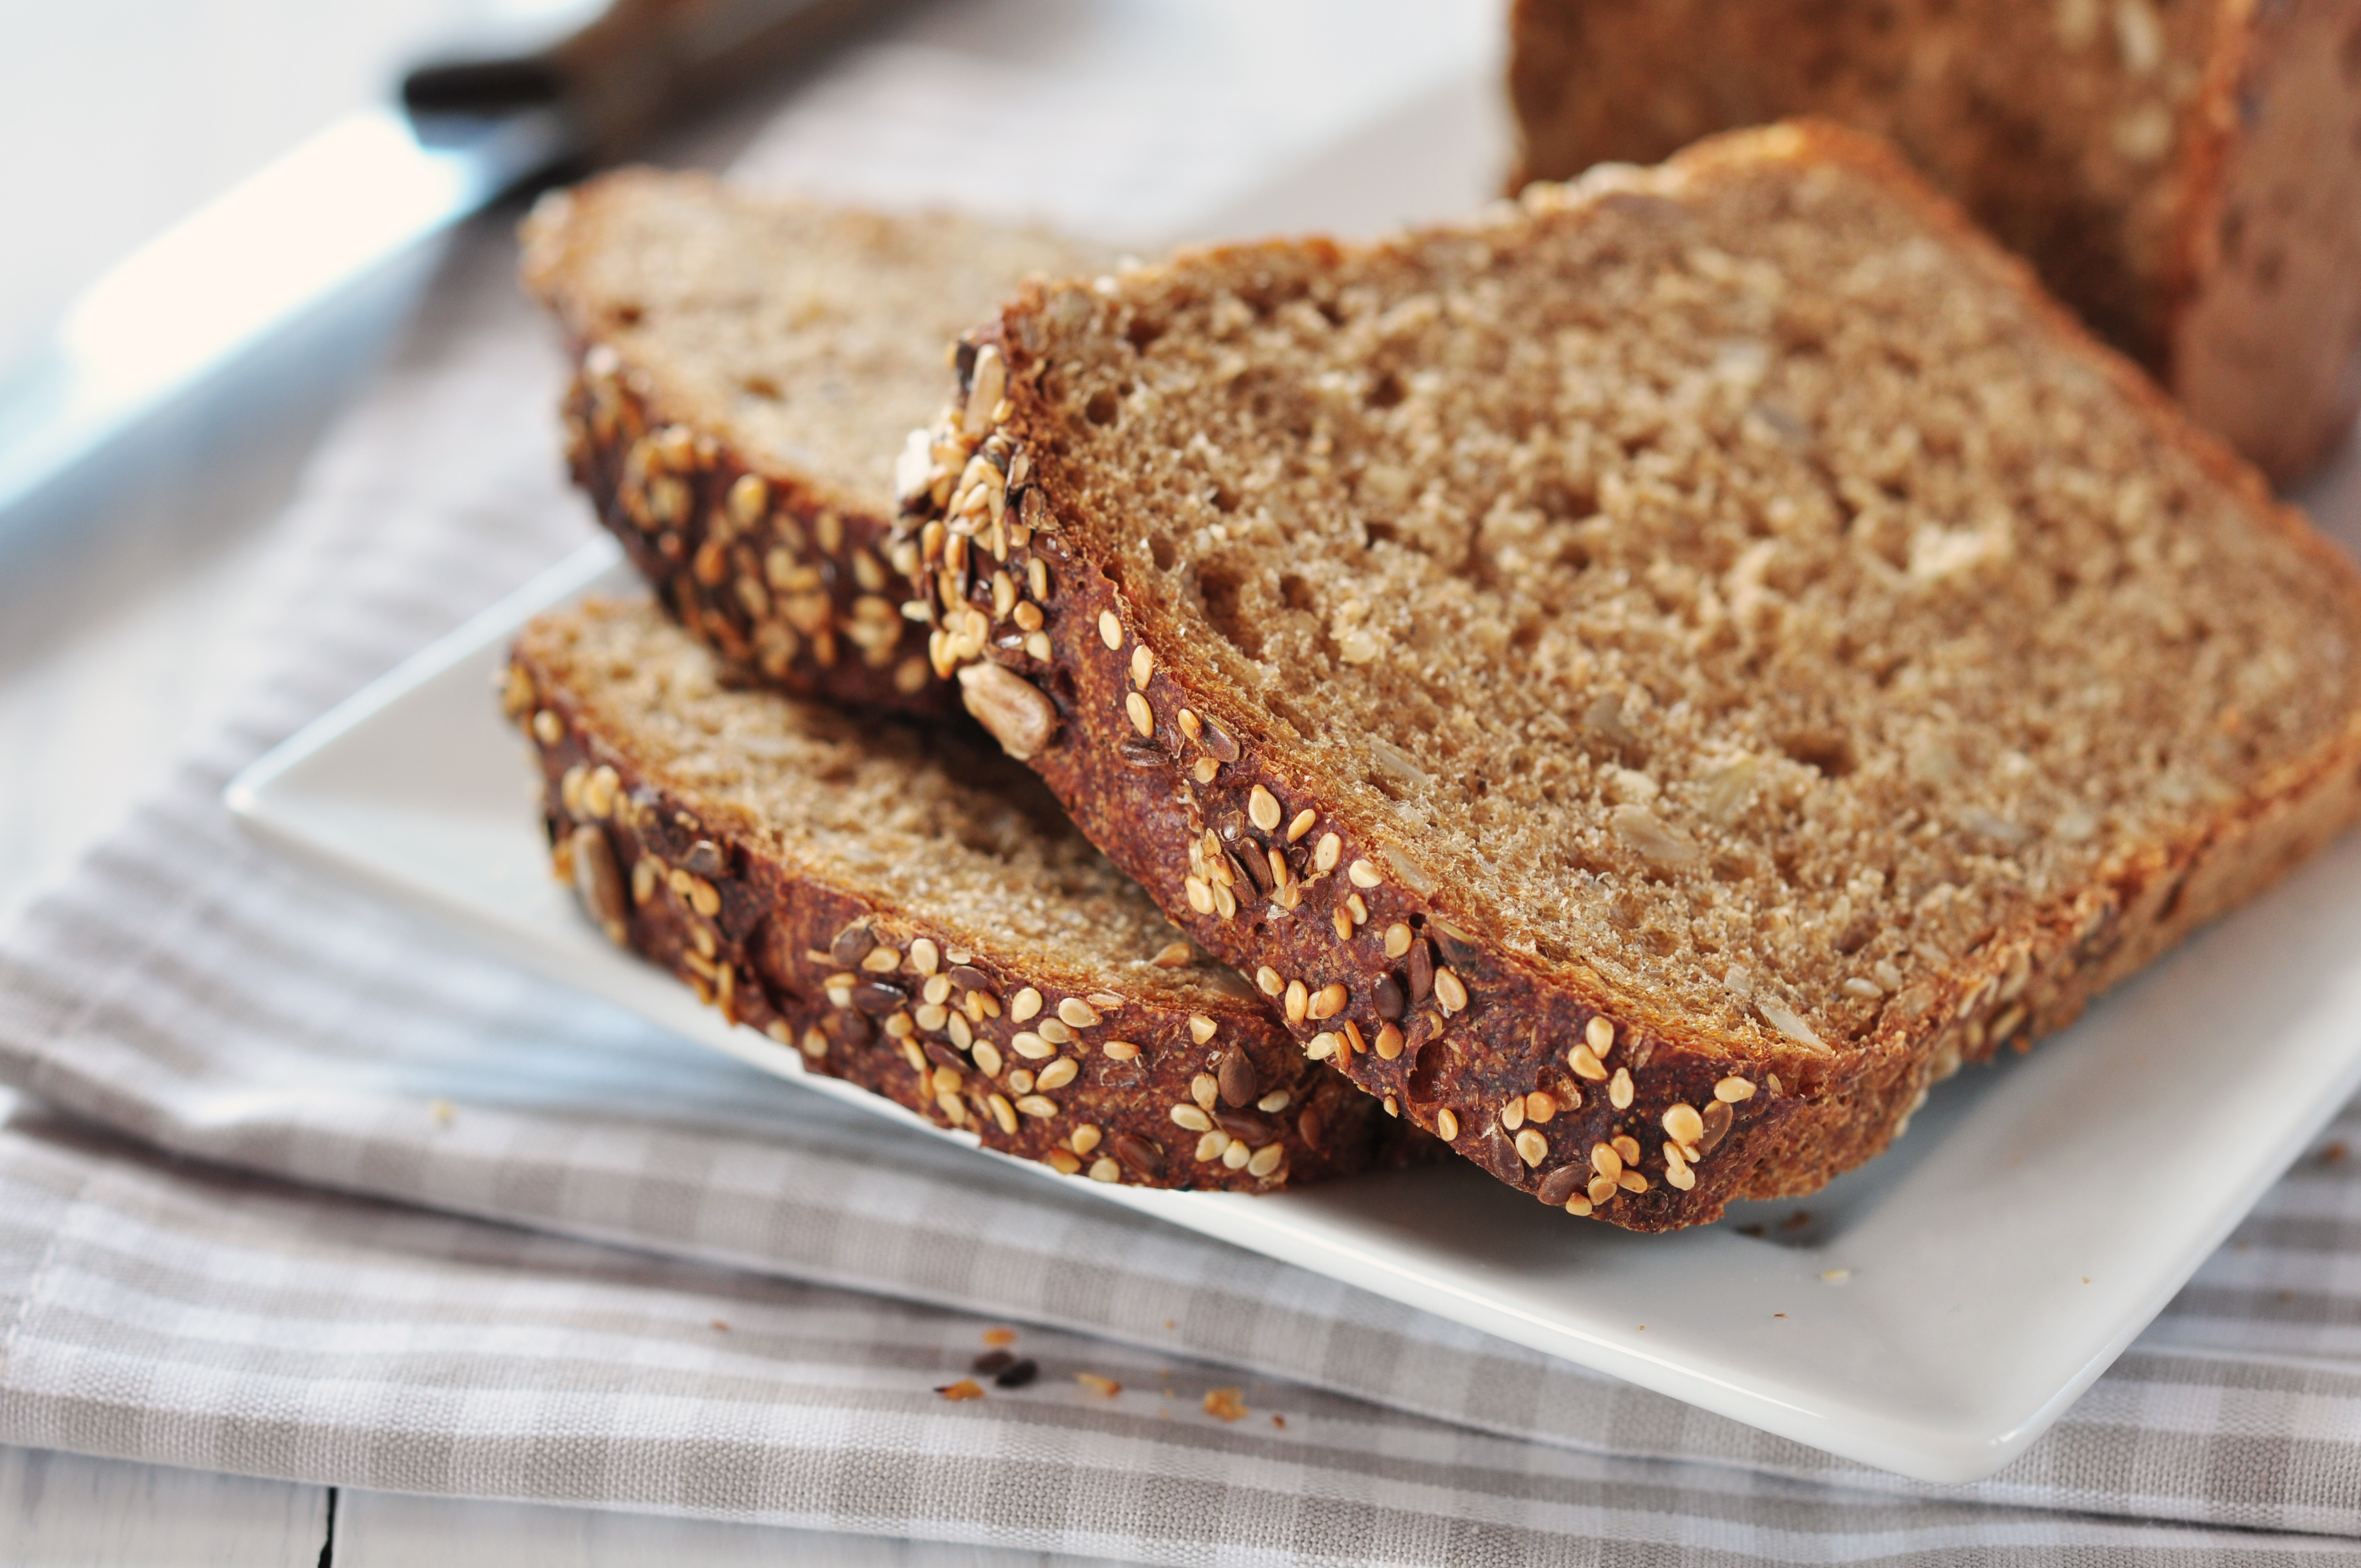 priority health personal wellness starch madness wheat bread